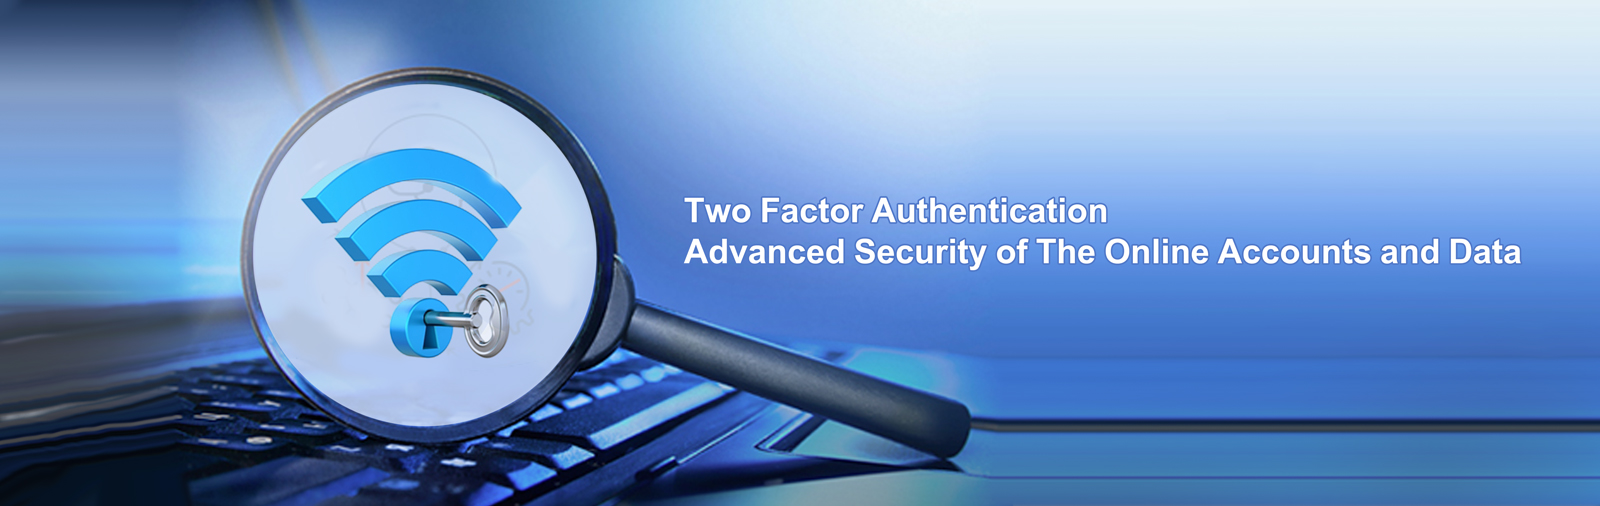 Two Factor Authentication: Advanced Security of The Online Accounts and Data